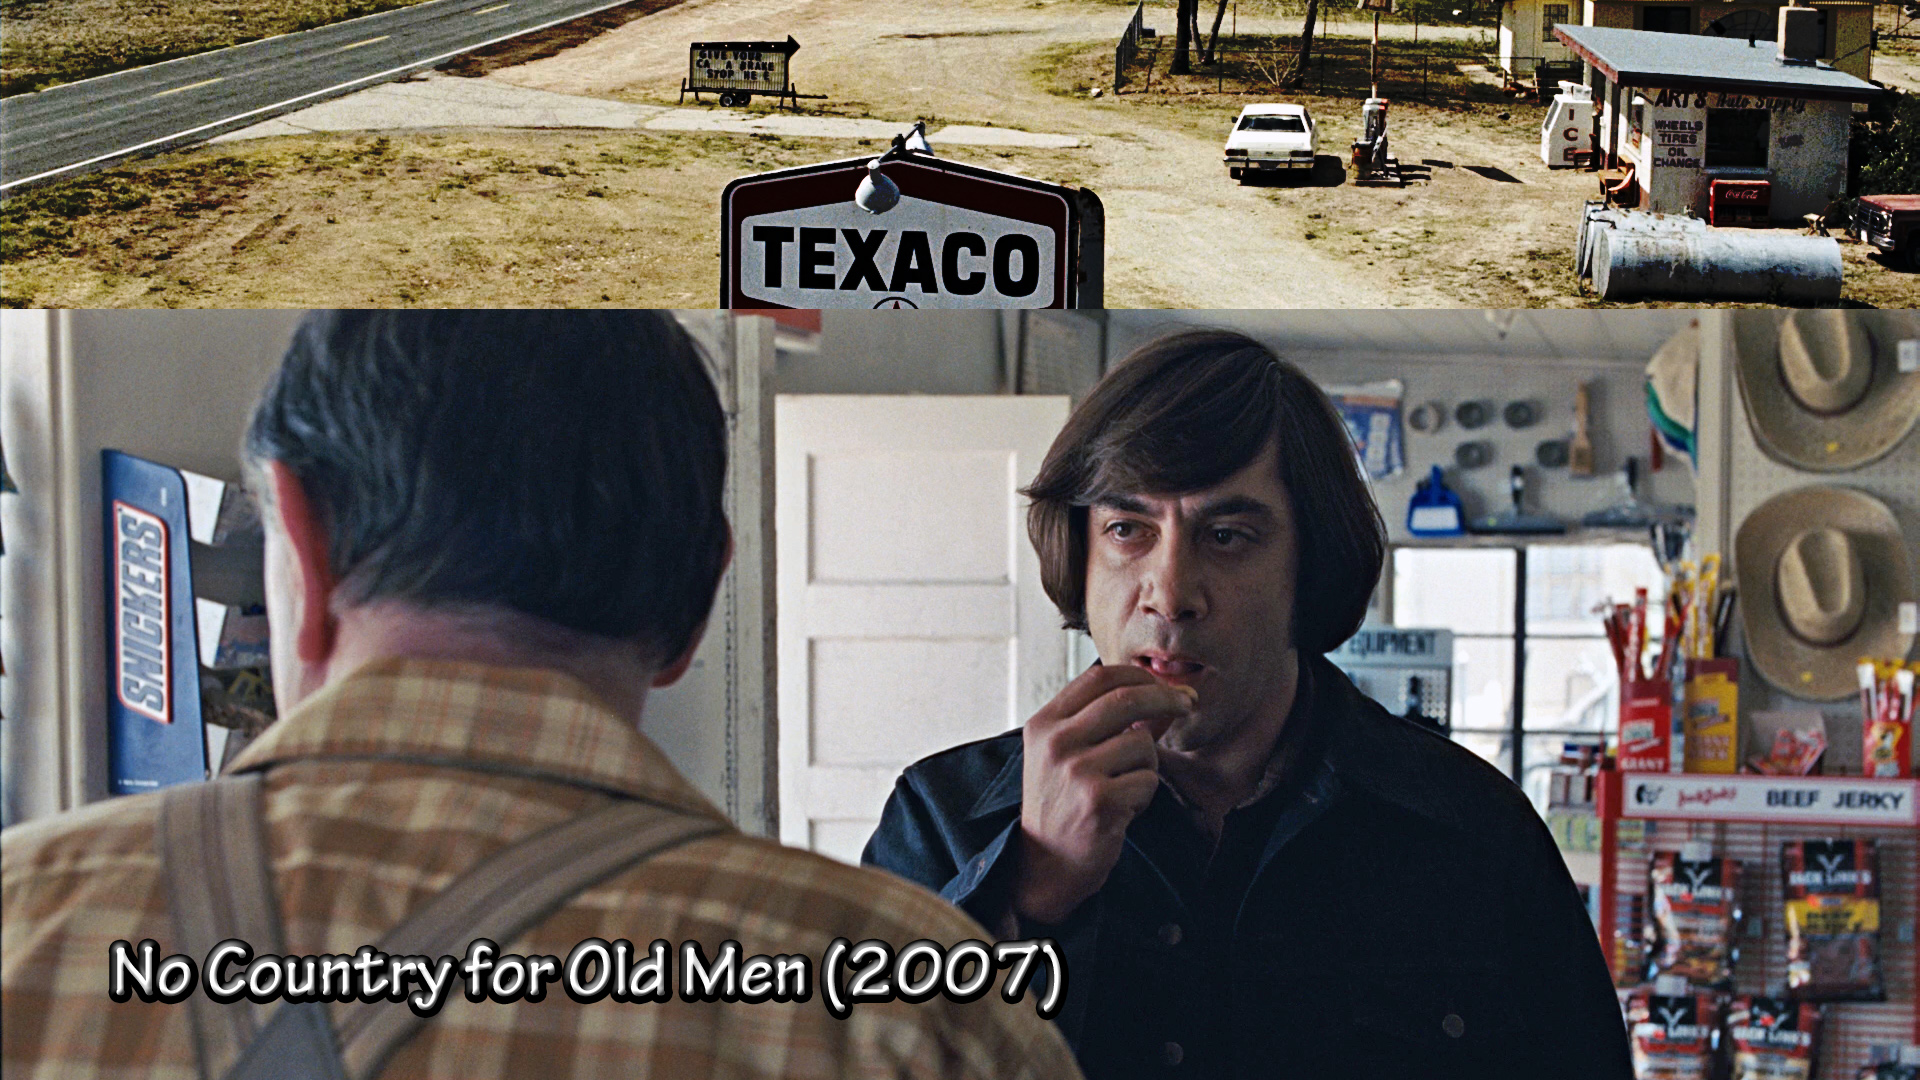 no country for old men film essay There's enough philosophical themes and issues explored in this film that a  textbook could be written about it.